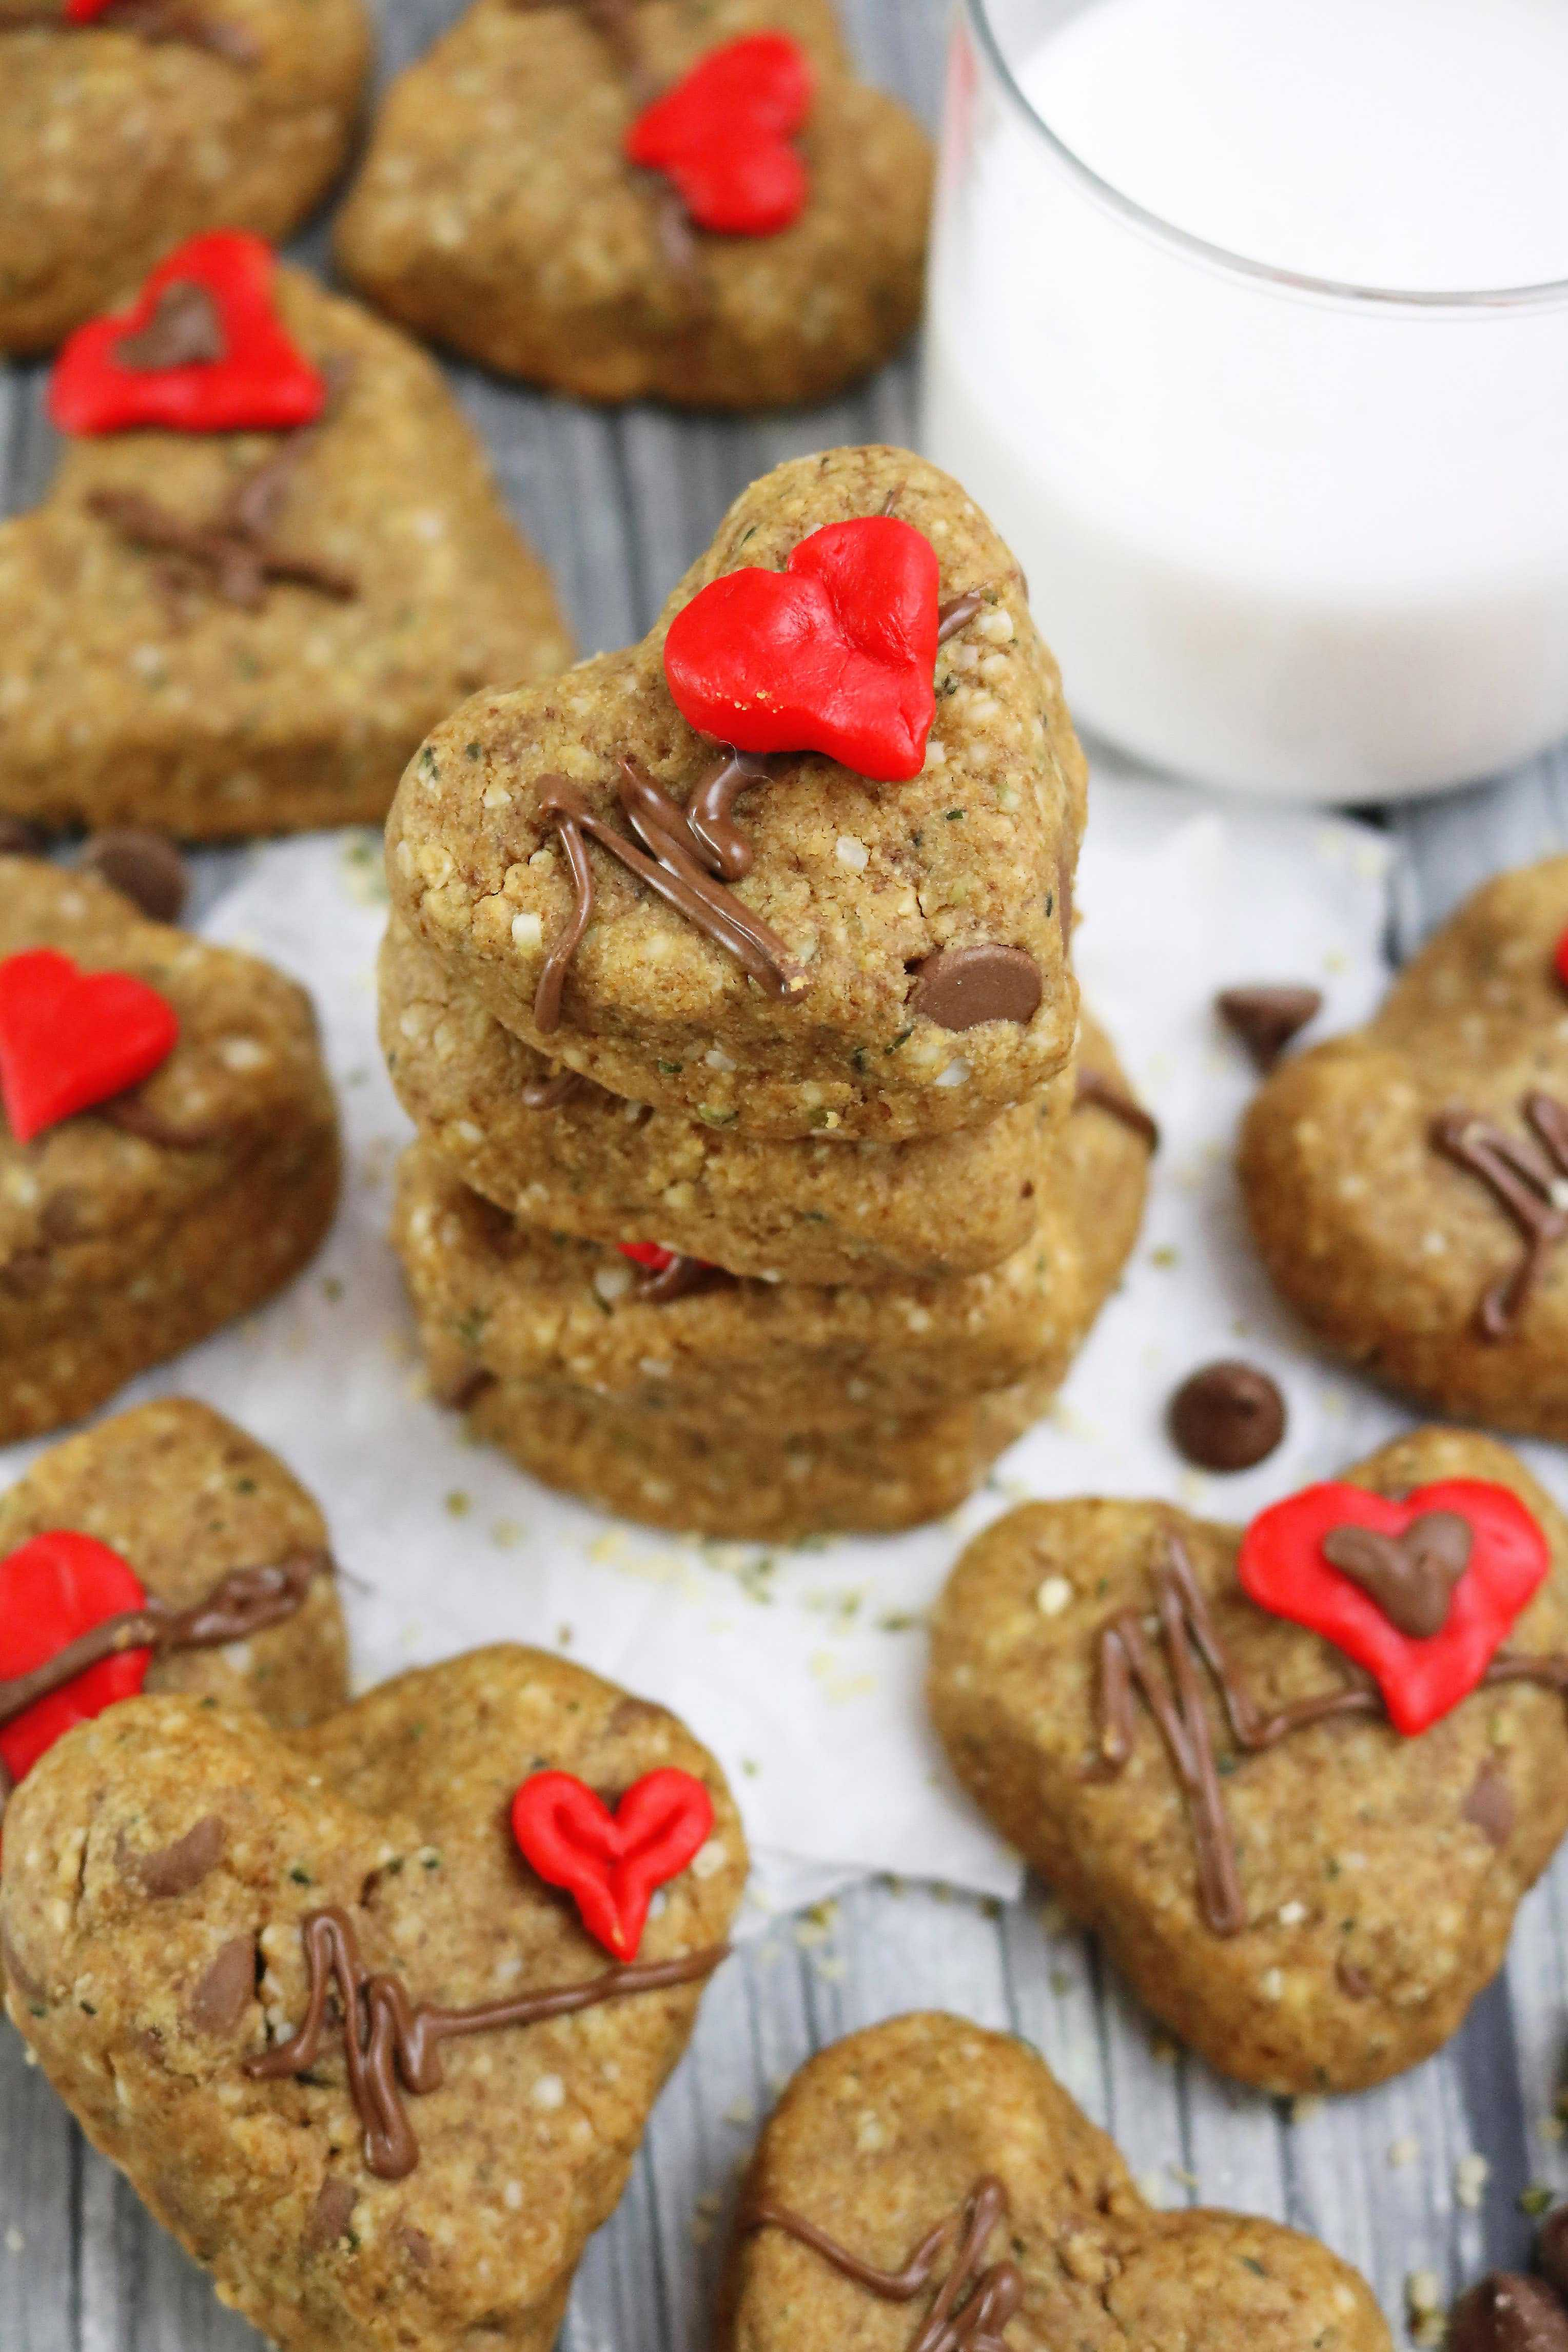 Chocolate Hemp Cookies (Gluten Free)